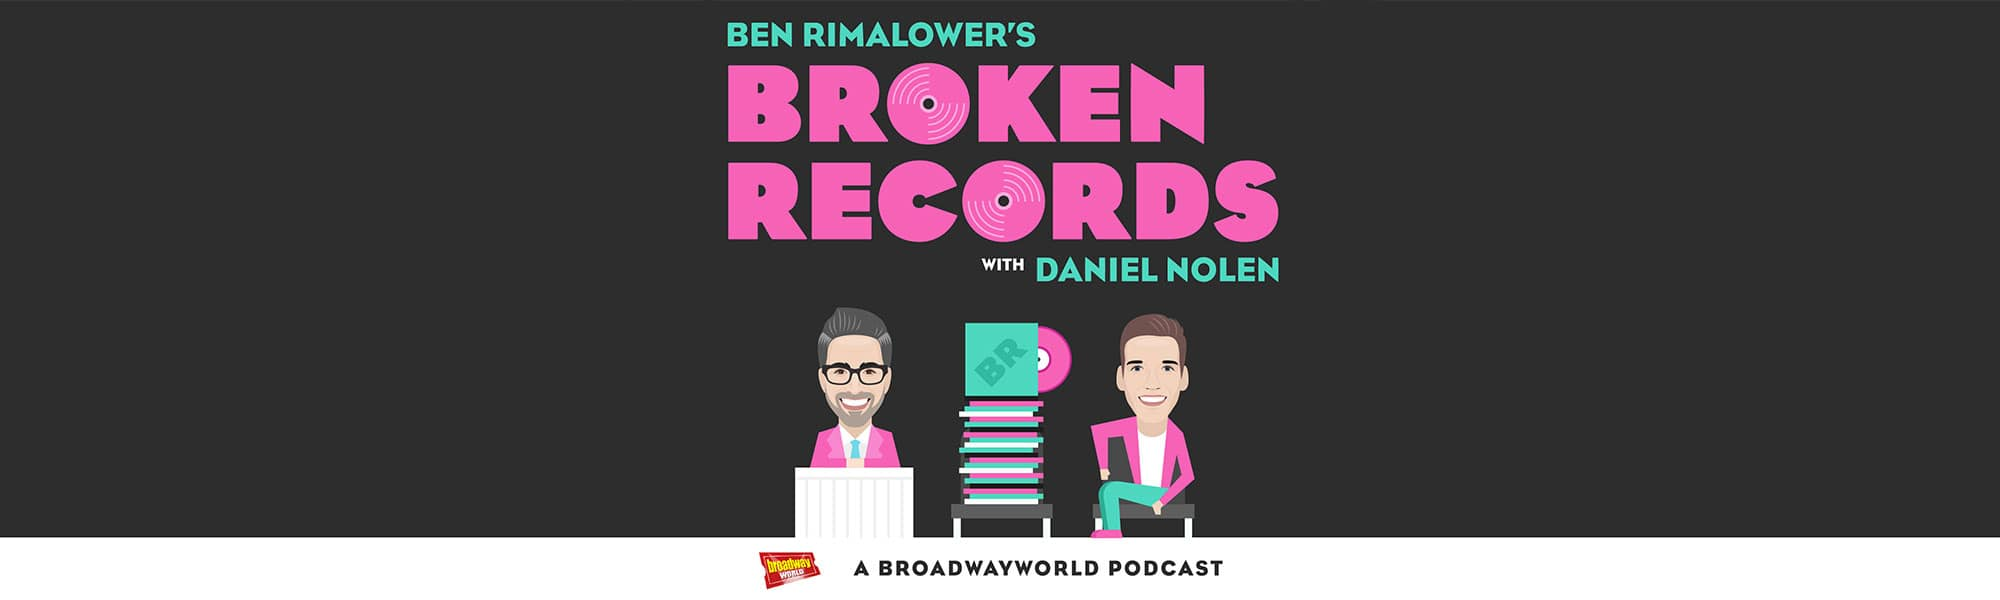 Ben Rimalower's Broken Records with Daniel Nolen